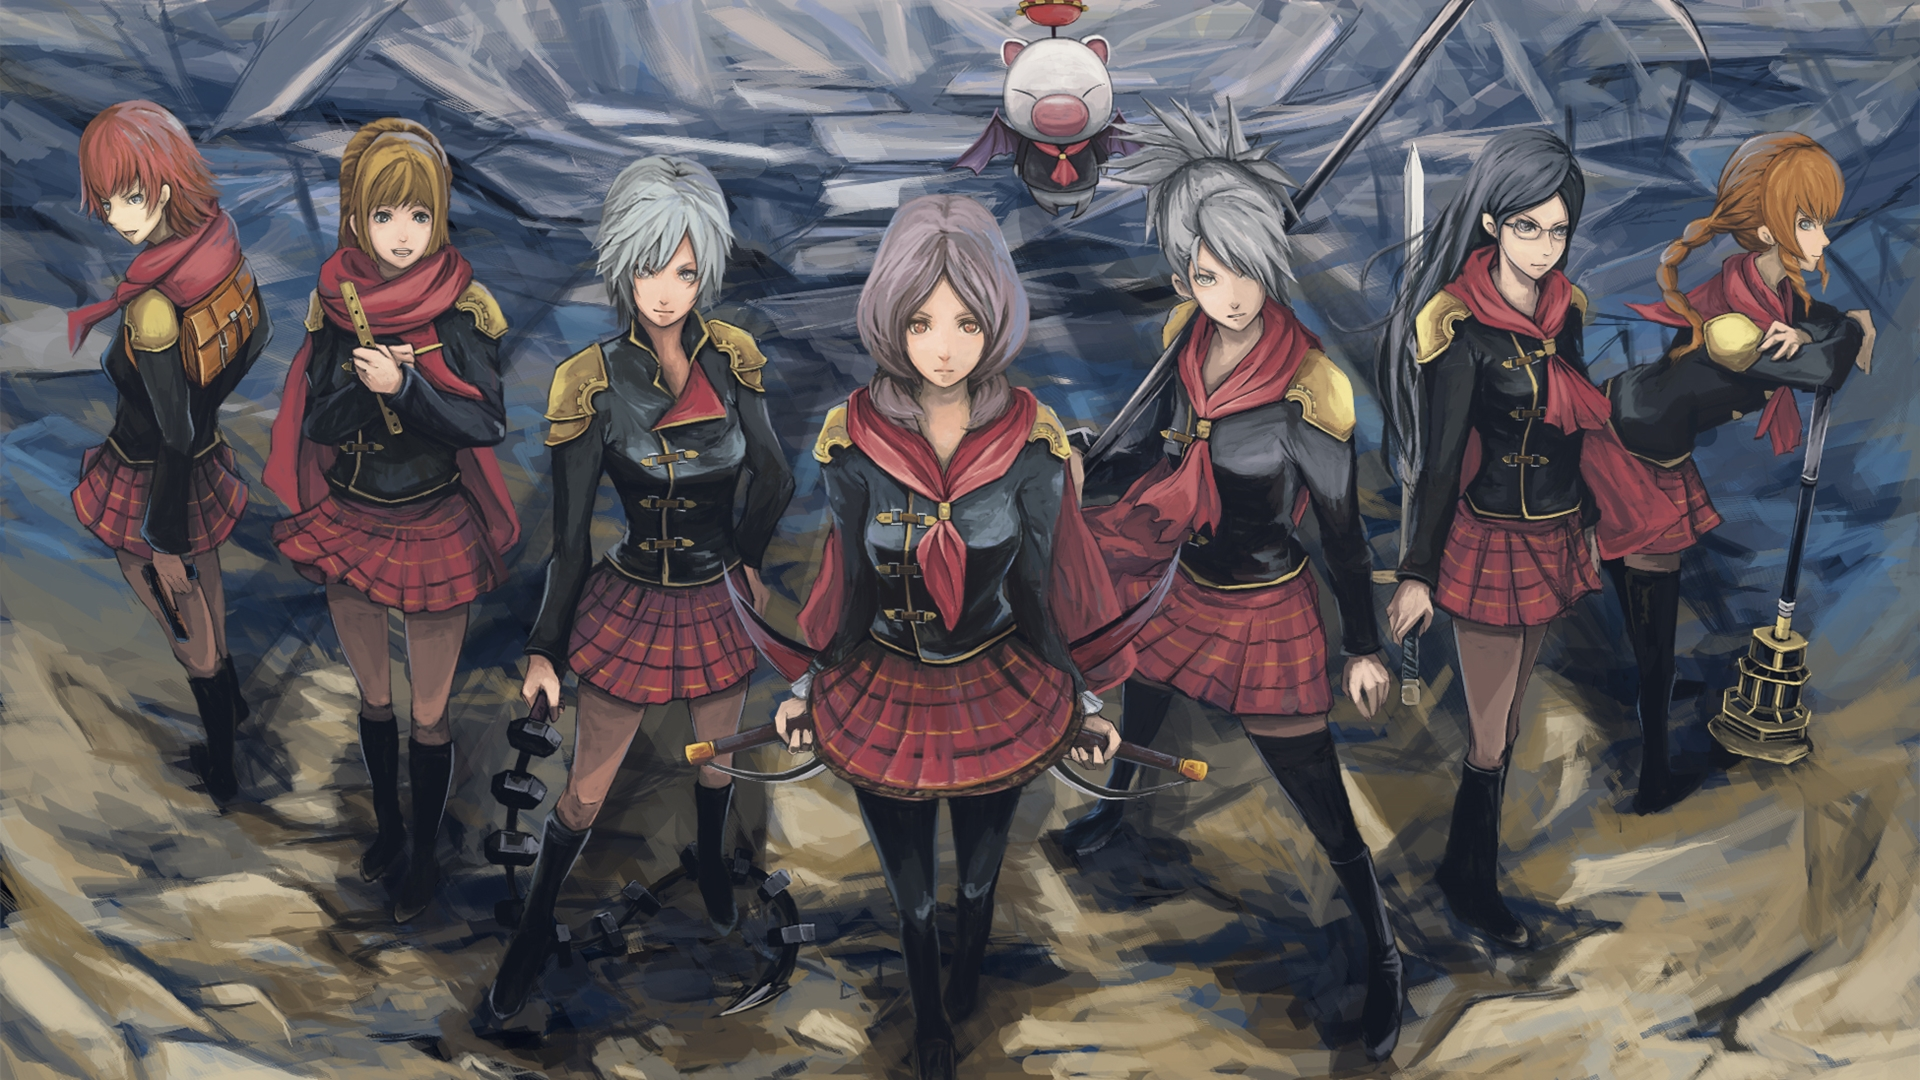 13 Final Fantasy Type0 Hd Hd Wallpapers  Backgrounds